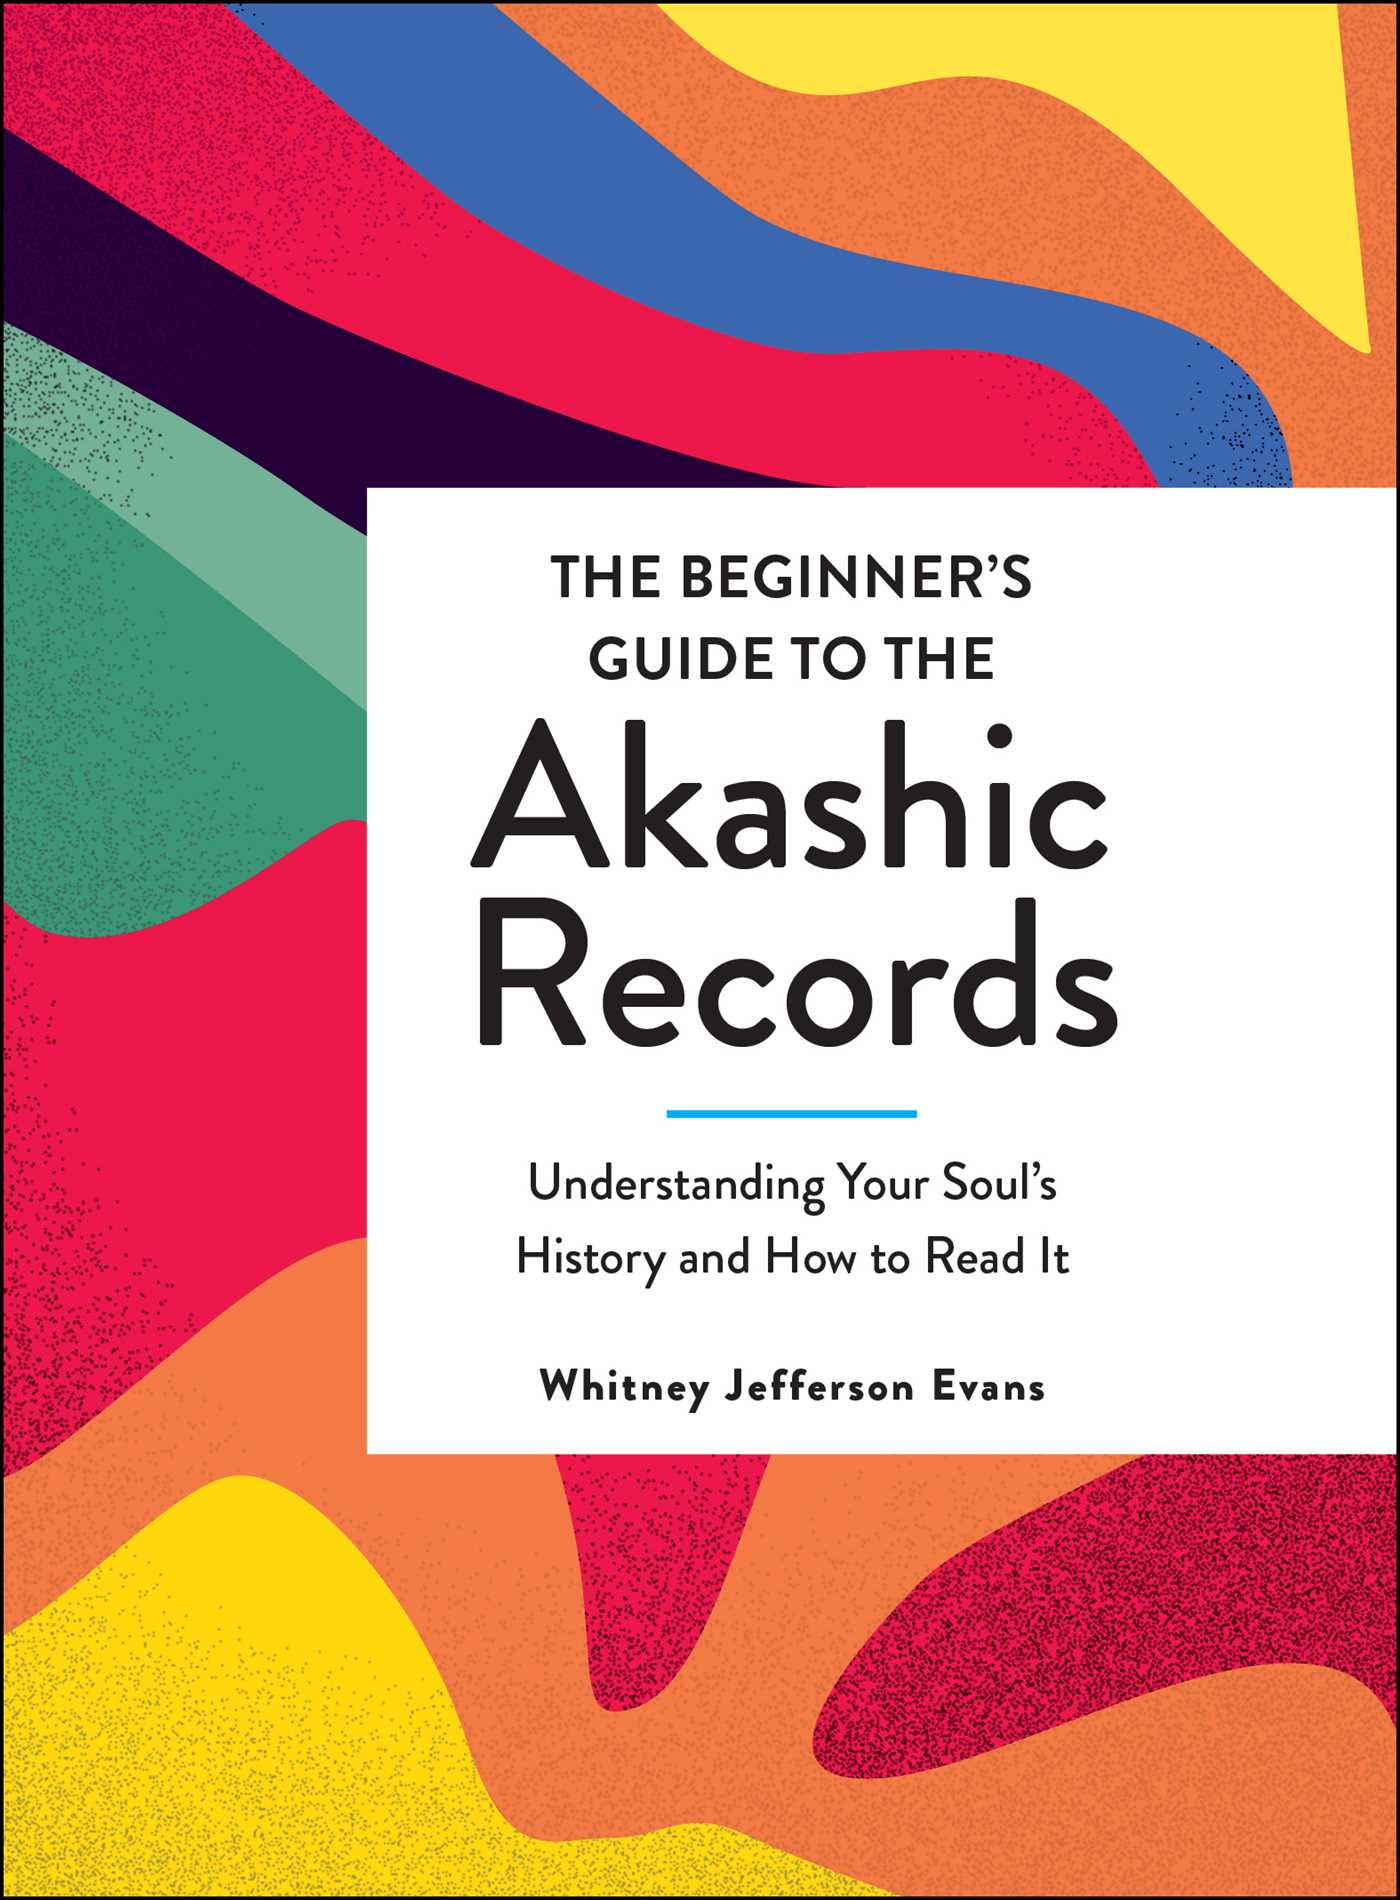 [PDF] [EPUB] The Beginner's Guide to the Akashic Records: Understanding Your Soul's History and How to Read It Download by Whitney Jefferson Evans